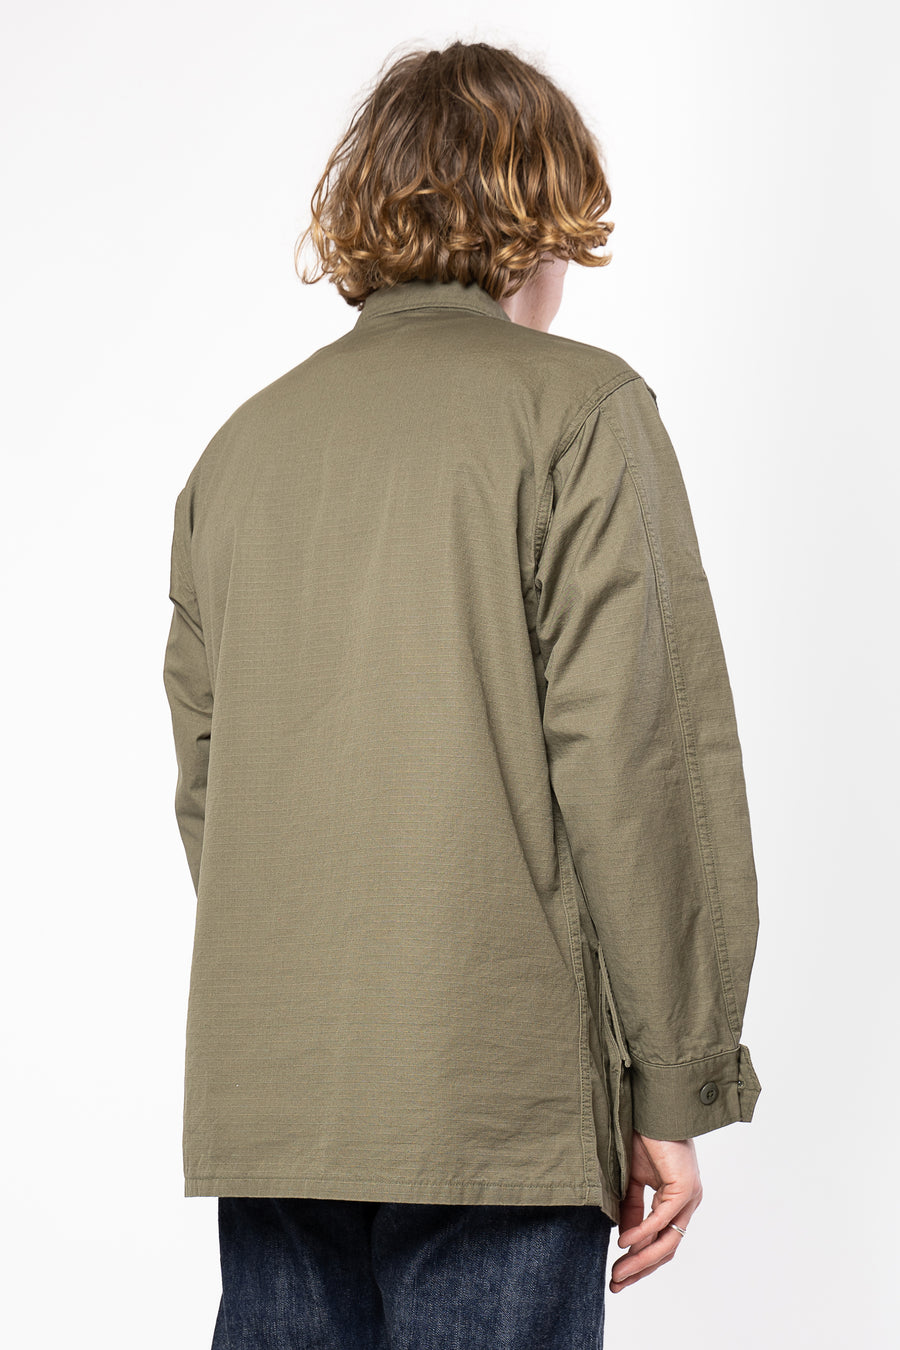 US Army Tropical Jacket